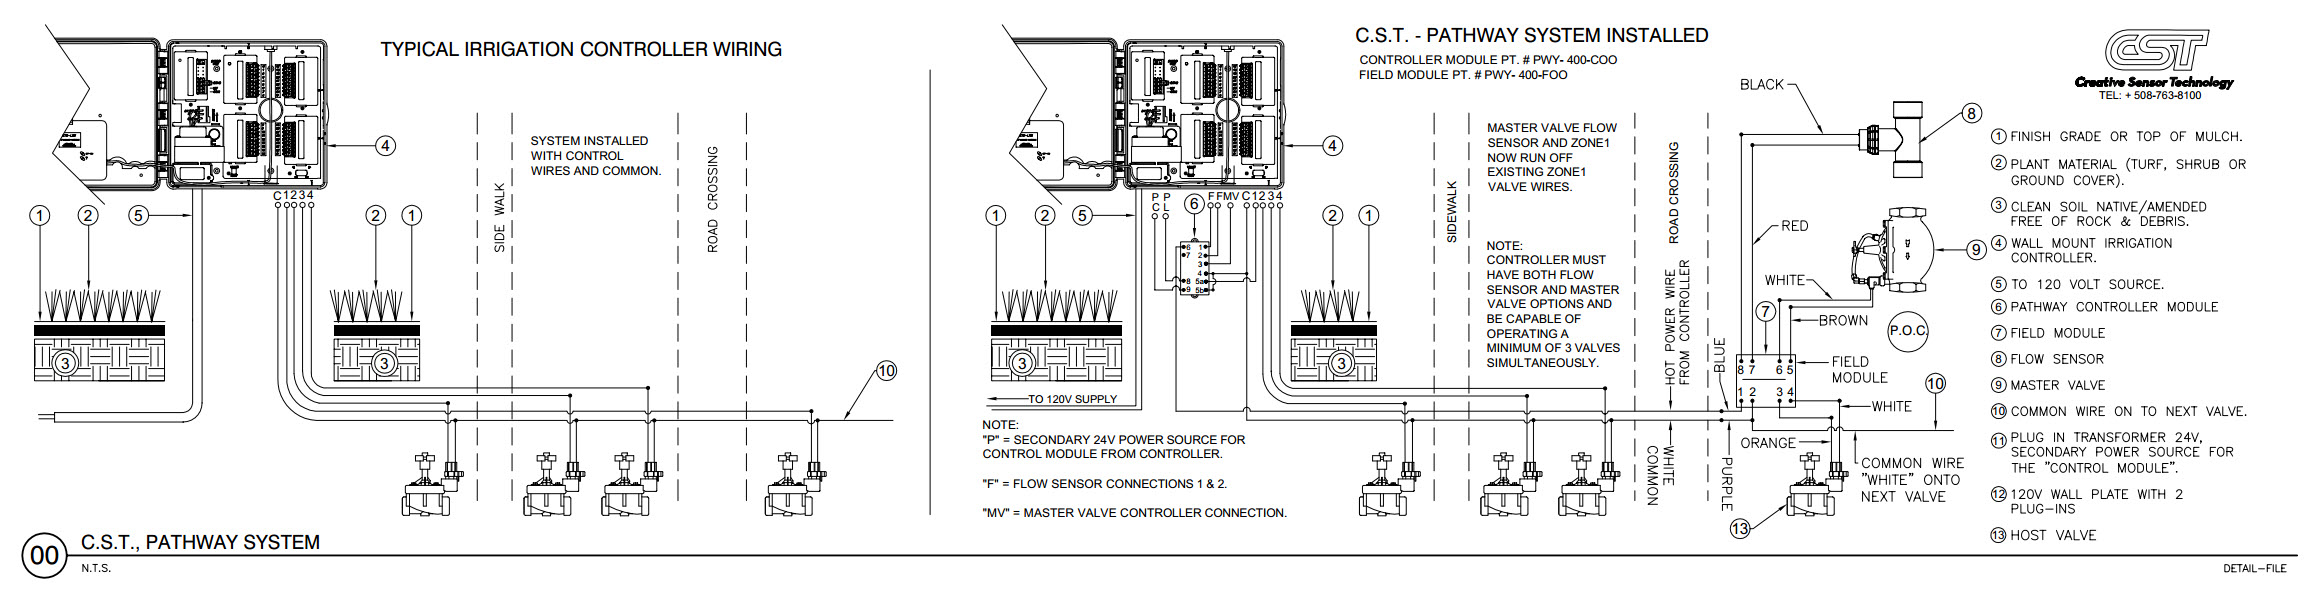 Rain Bird Esp Modular Wiring Diagram - Wiring Diagrams List Rain Bird Wiring Schematic on